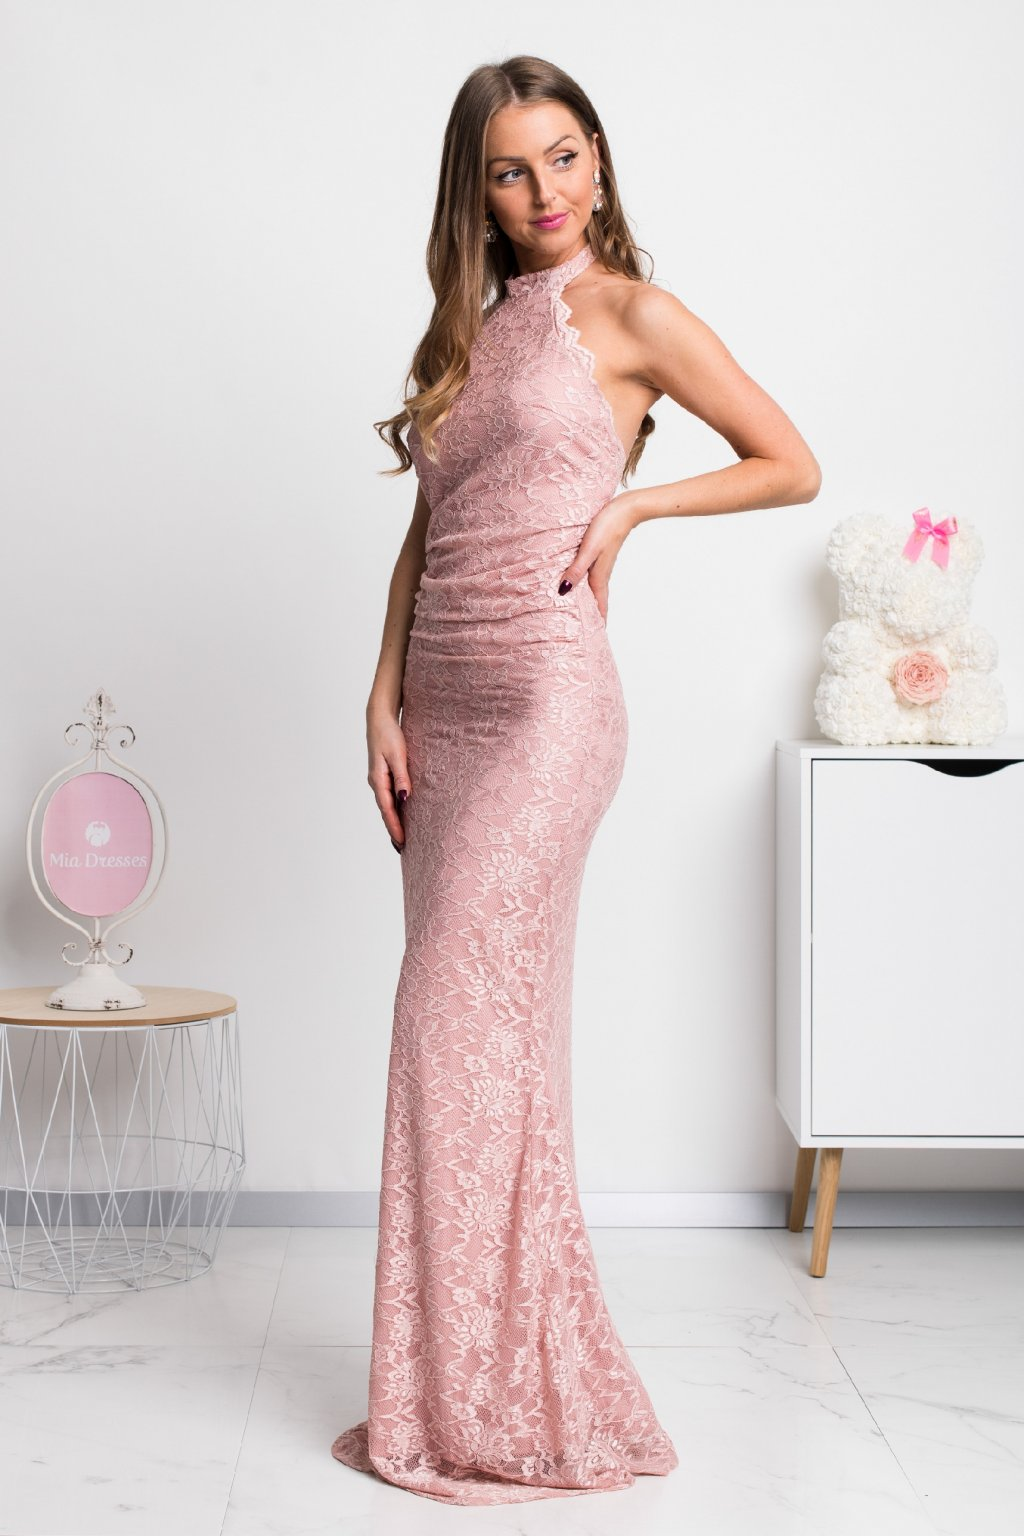 Dusty pink lace backless dress